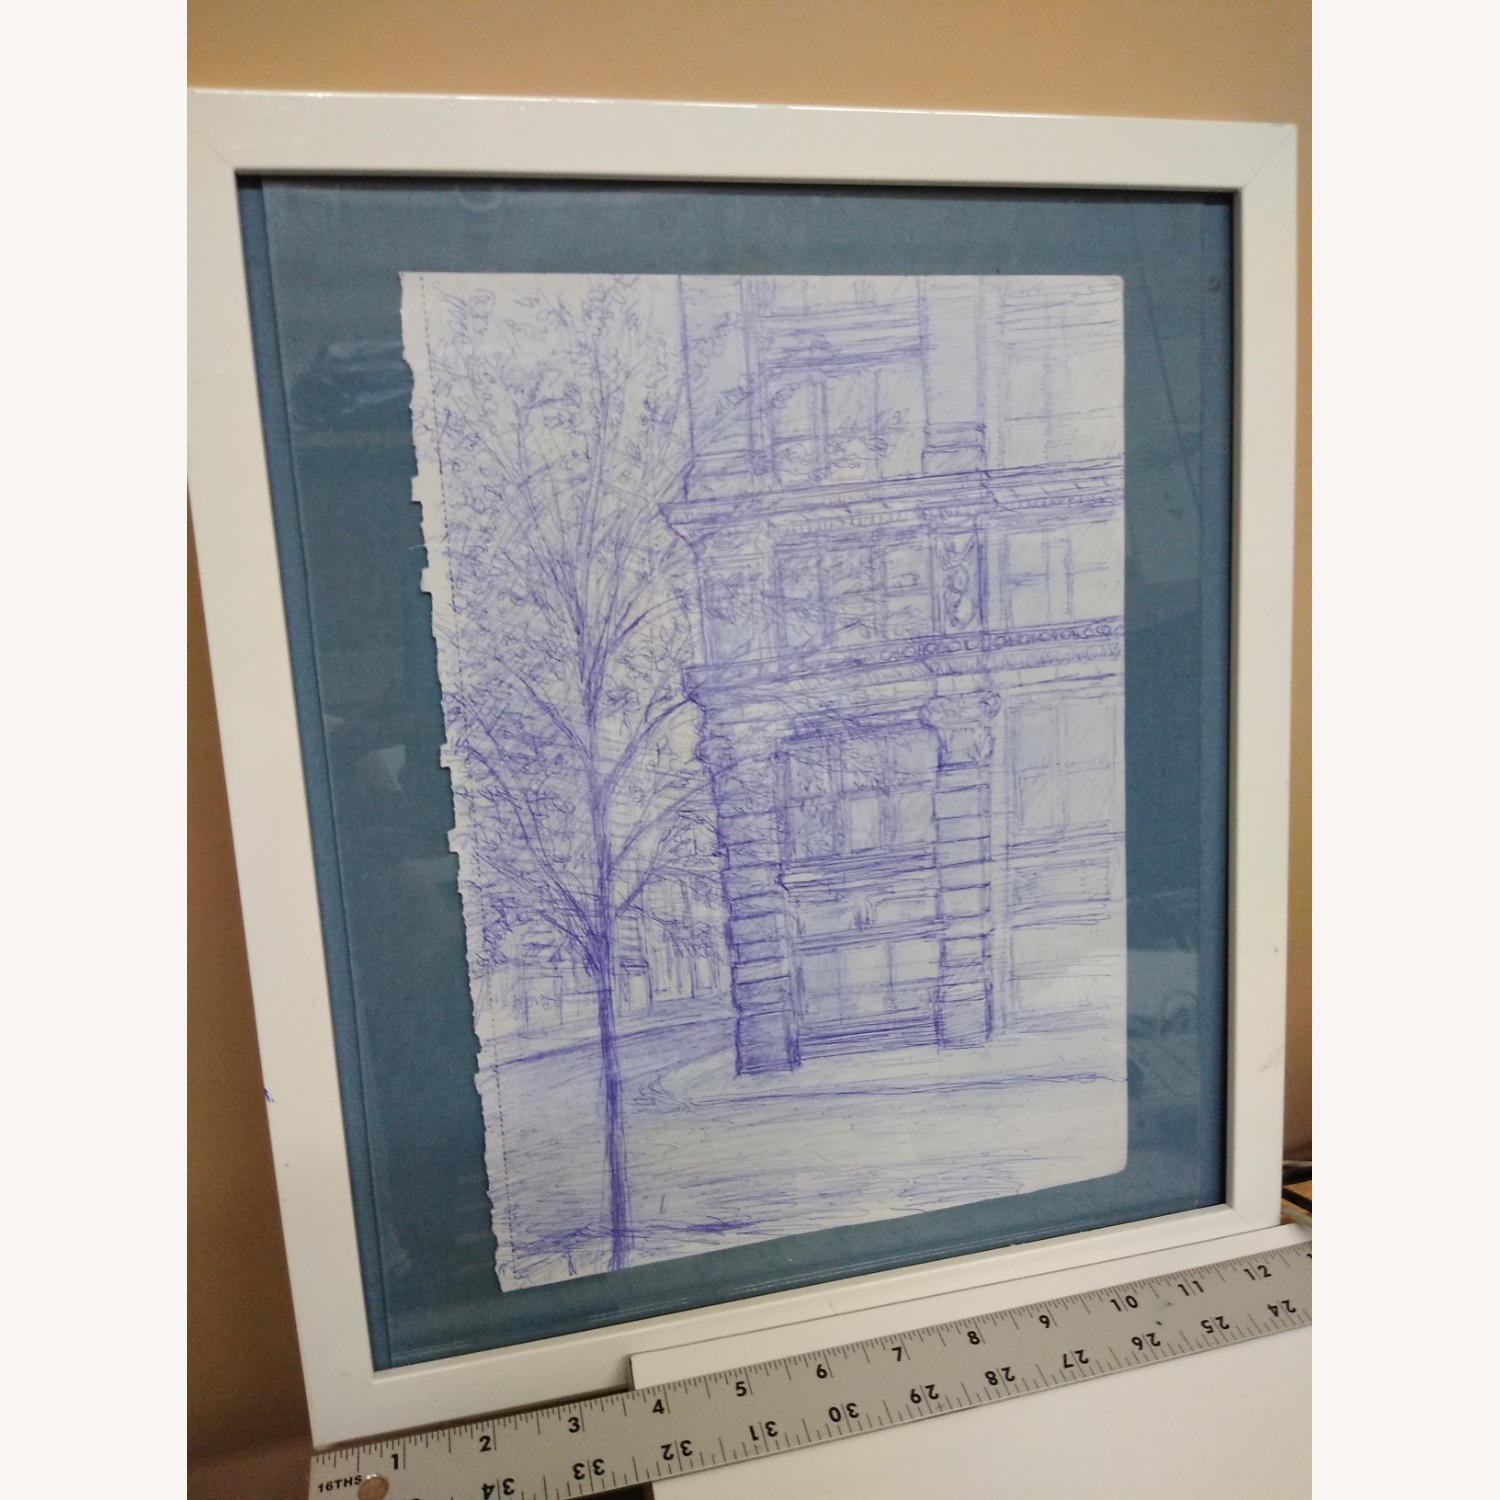 Drawing Restaurant Outdoor Dining View NY - image-16